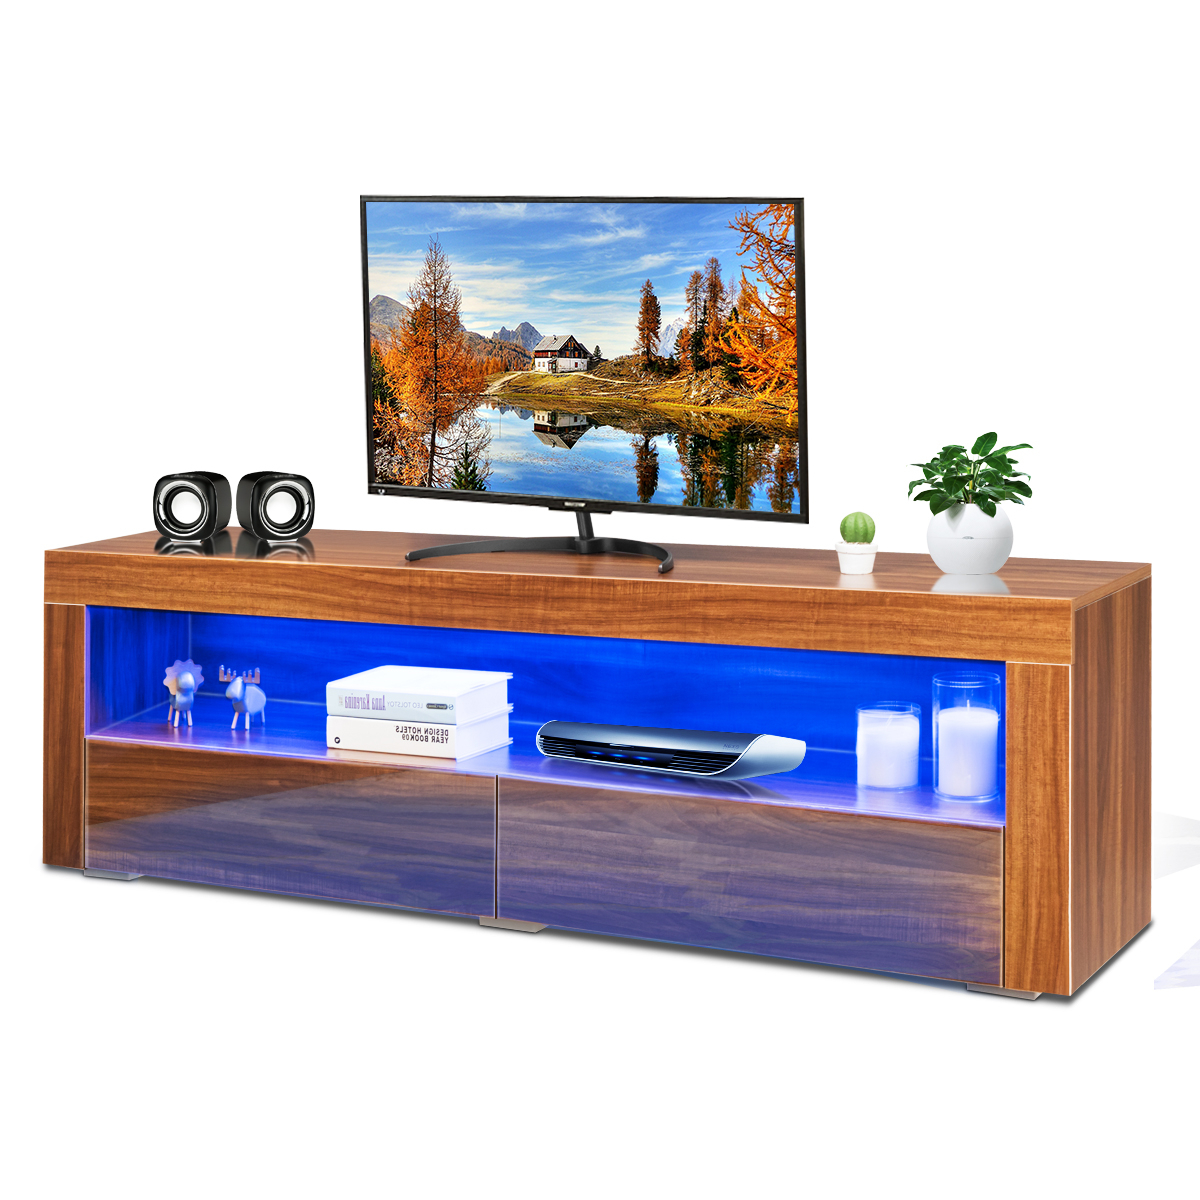 Costway High Gloss Tv Stand Media Entertainment W/led Pertaining To Tv Stands Cabinet Media Console Shelves 2 Drawers With Led Light (View 6 of 20)